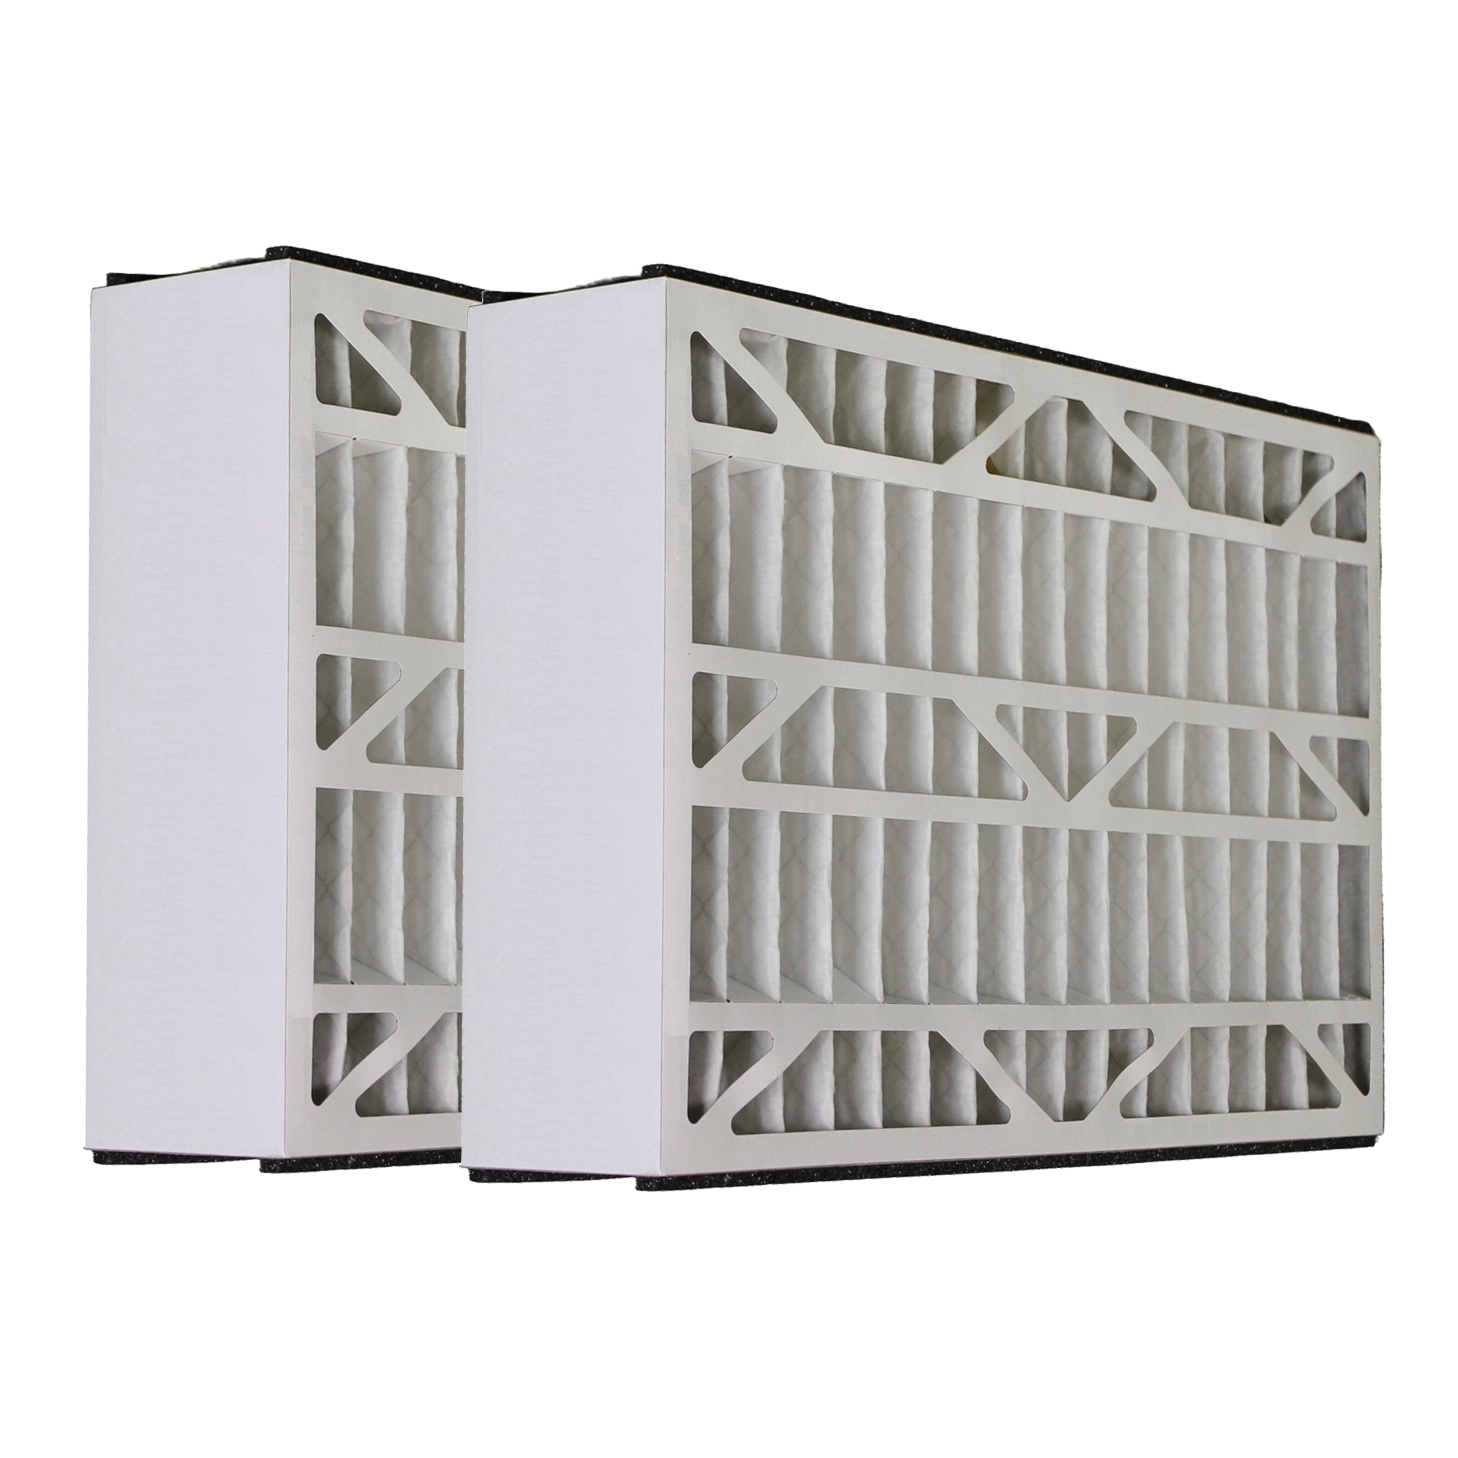 Tier1 Replacement for Skuttle 20x25x5 Merv 8 AC Furnace Air Filter 2 Pack